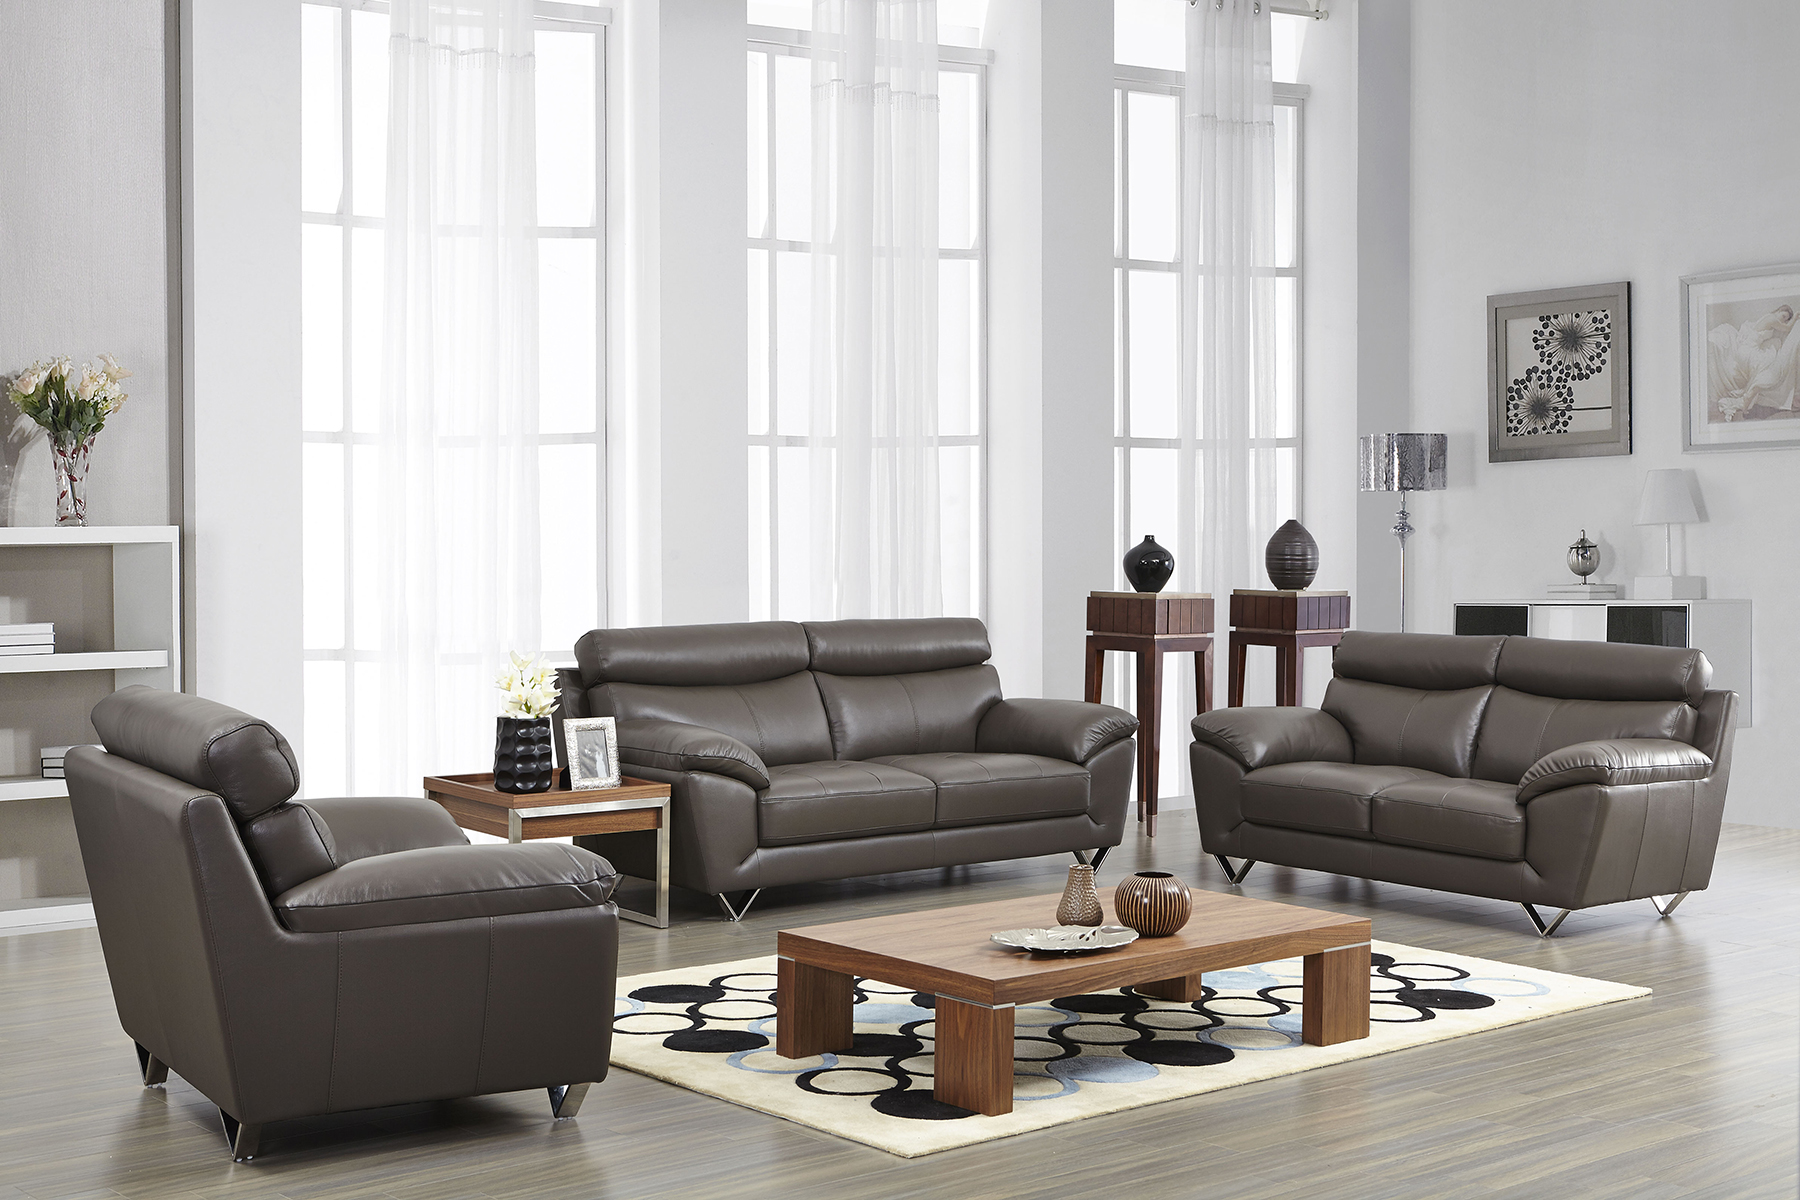 Contemporary stylish leather 3pc sofa set with chrome legs for Living room ideas with leather furniture